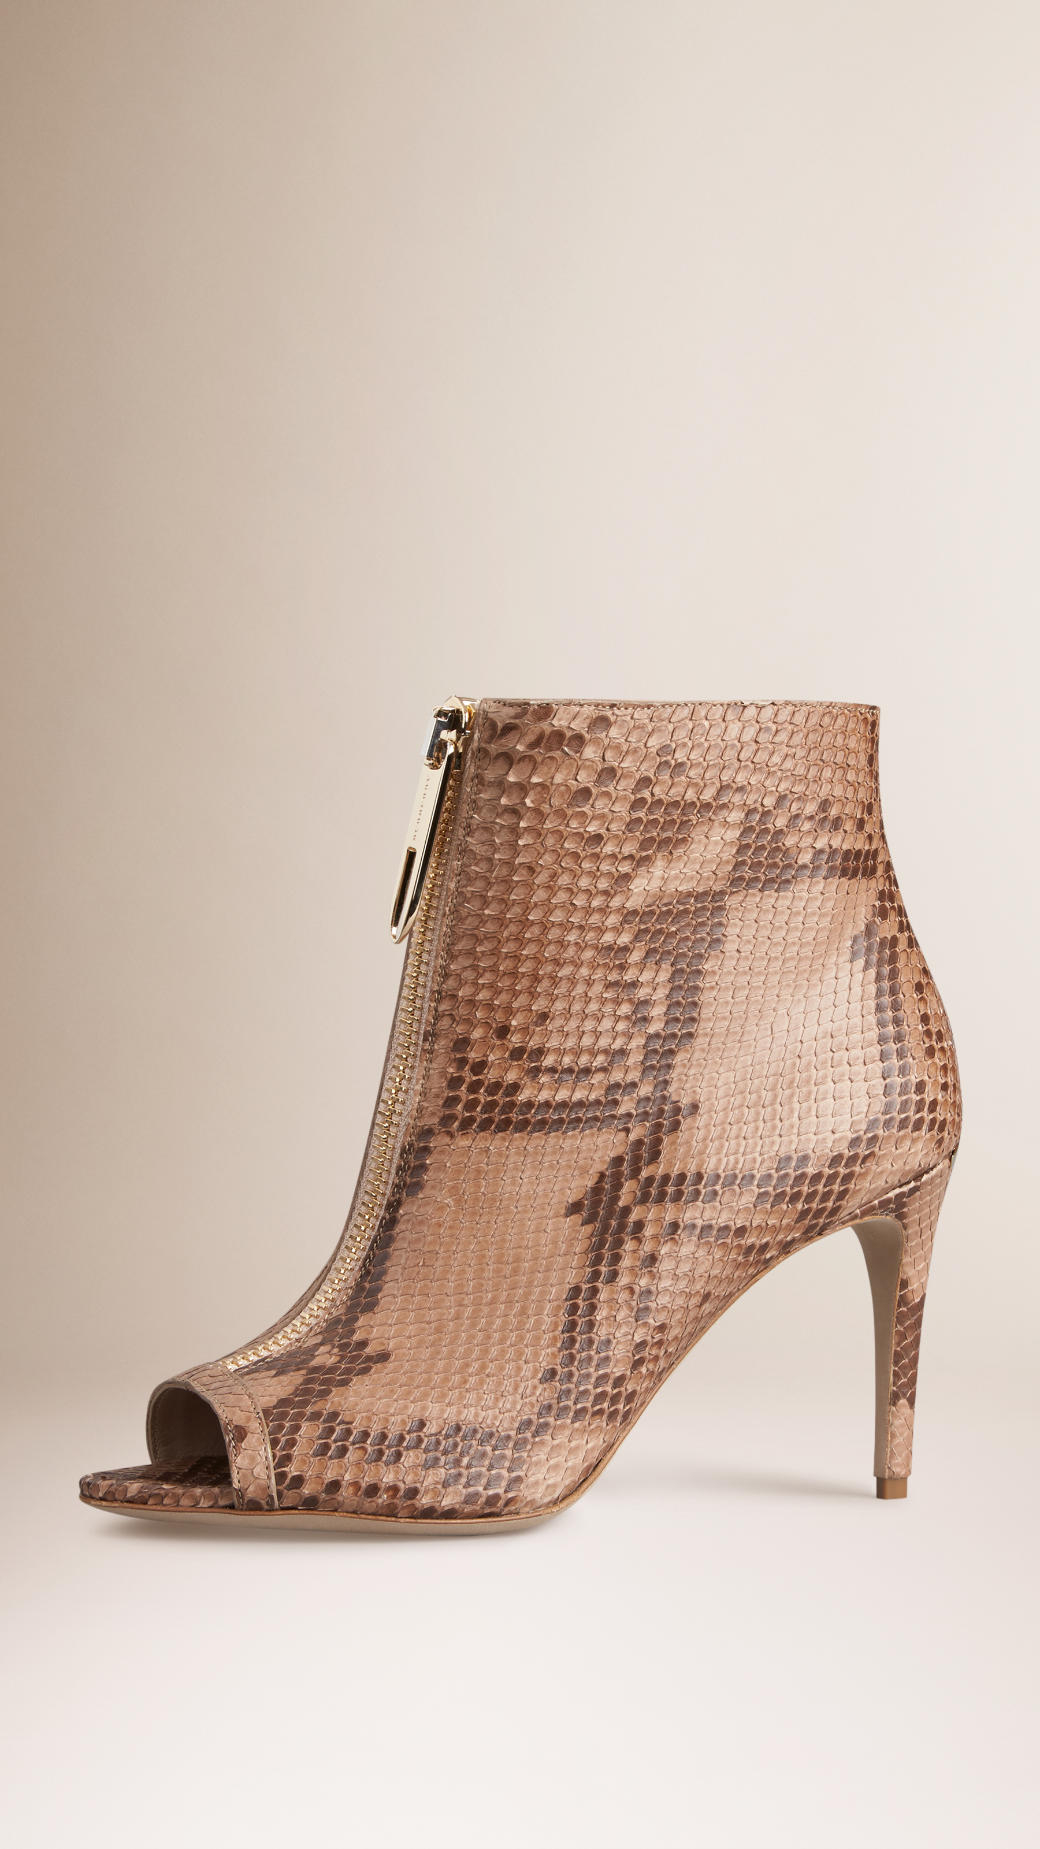 Burberry Snakeskin Peep-Toe Booties cheap authentic discount shop very cheap sale online outlet sale VGboxLXXBO